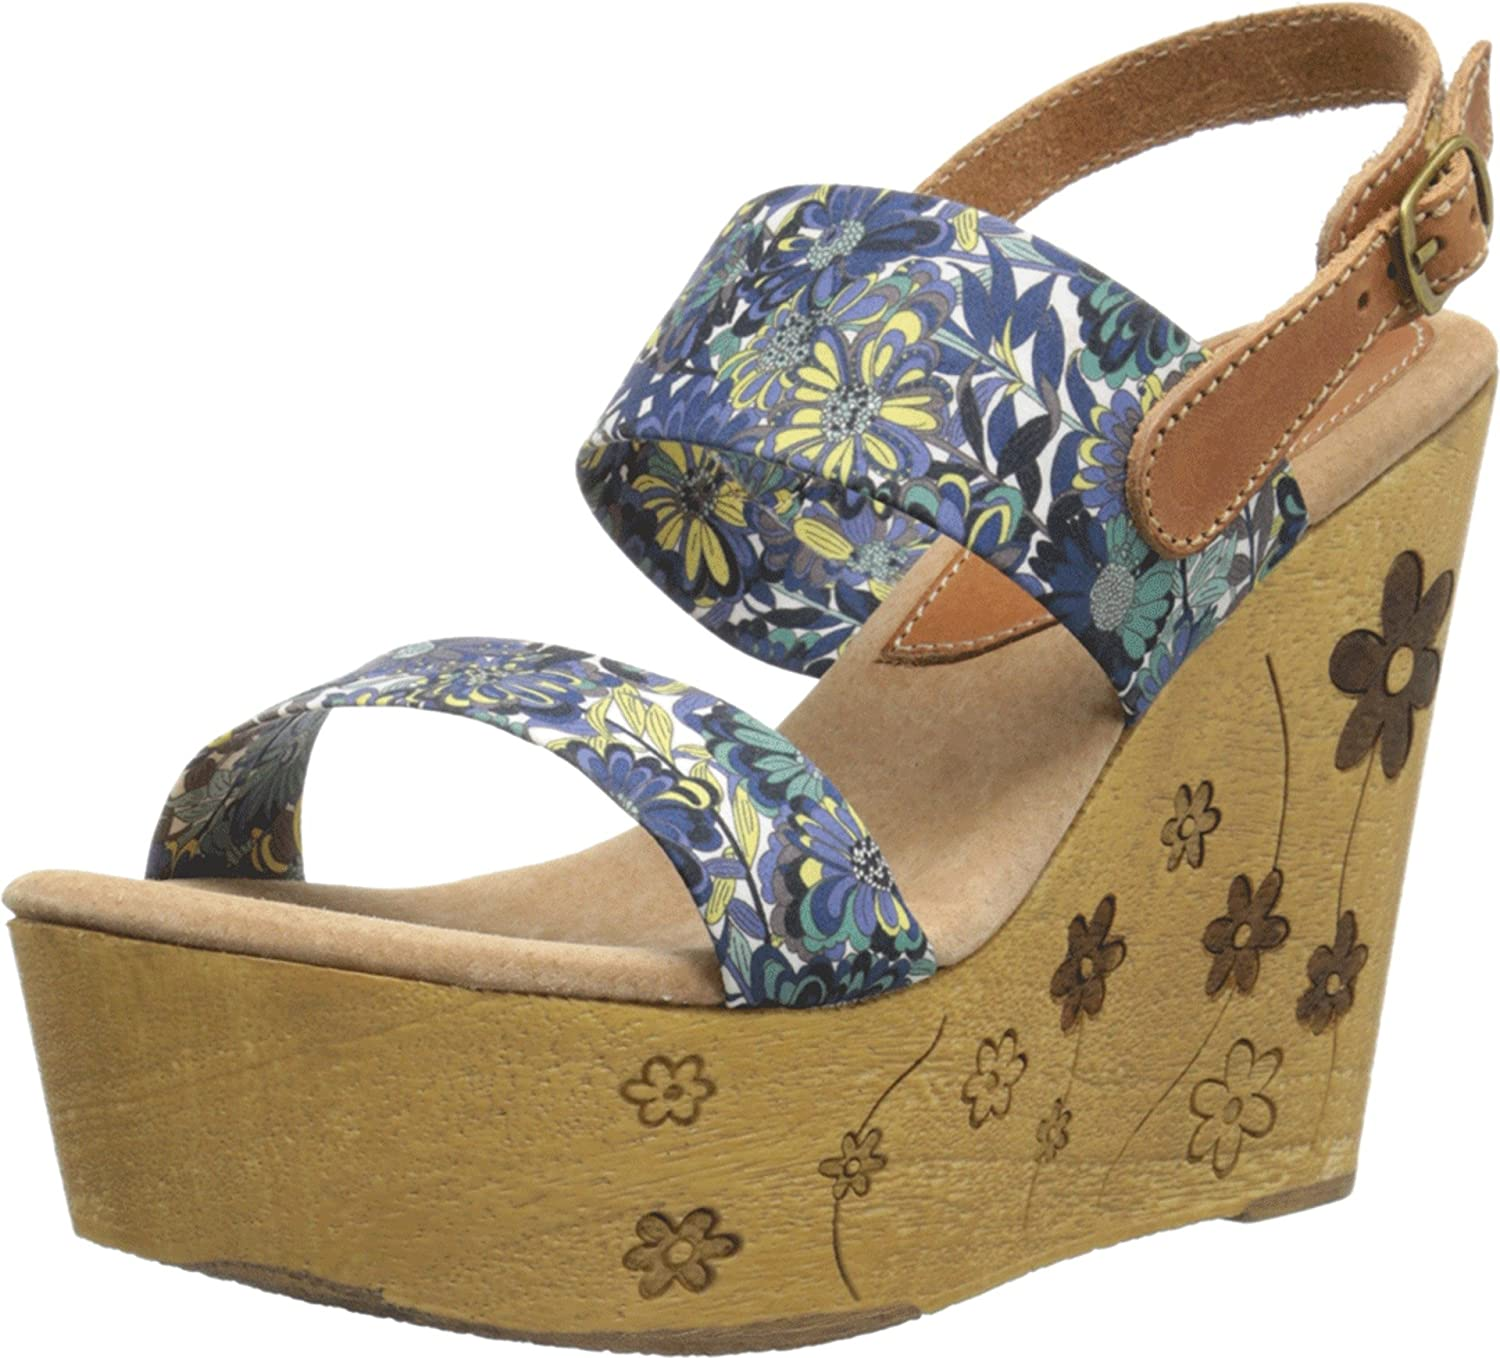 Sbicca Women's Fabiana Wedge Sandal B01AWAX6HQ 10 B(M) US|Navy Multi